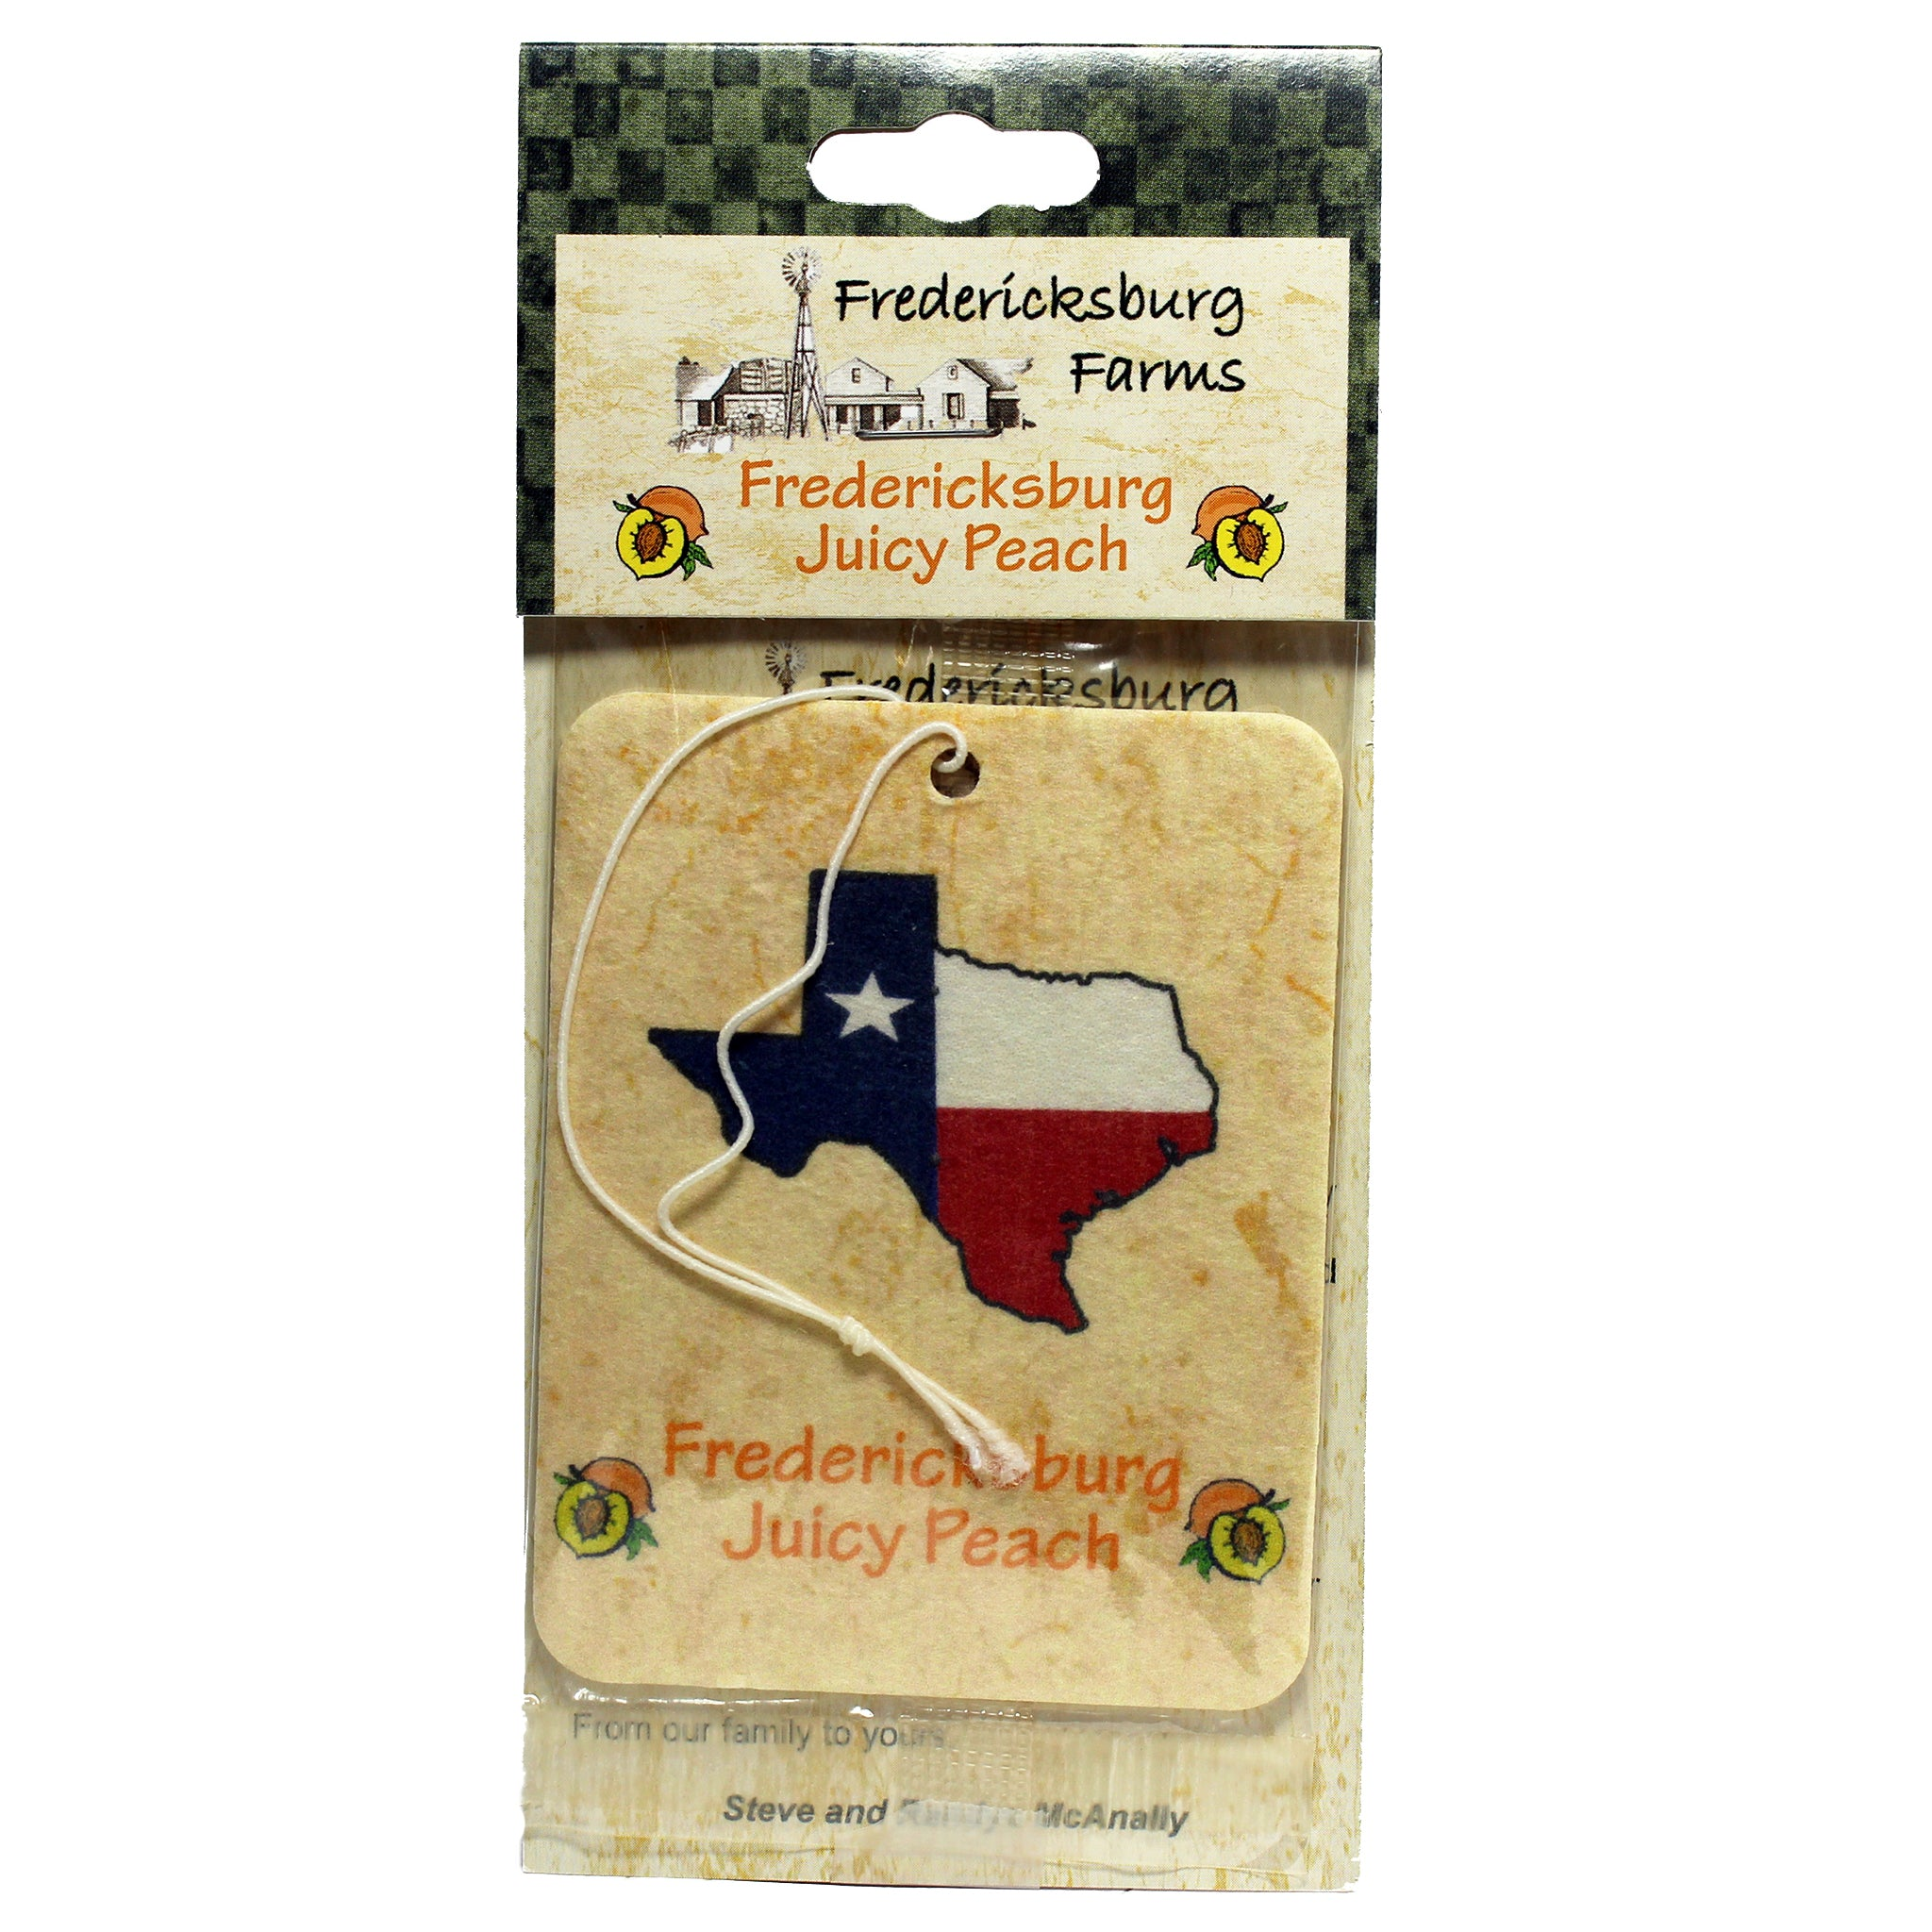 Fredericksburg Juicy Peach Air Freshener - Fredericksburg Farms